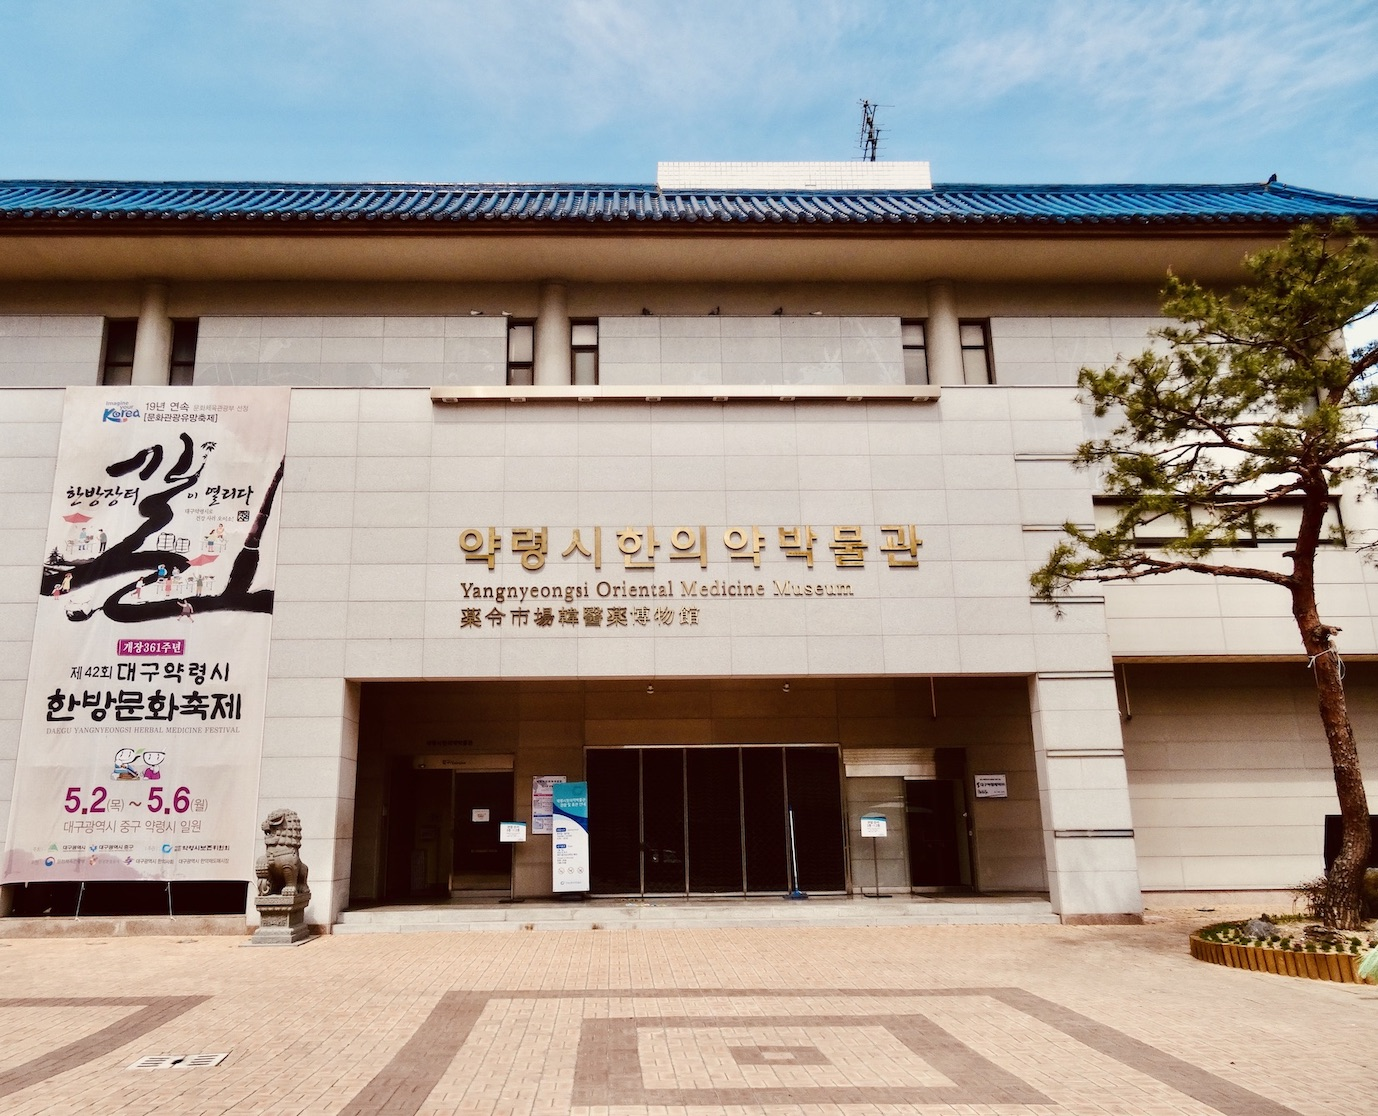 Yangnyeongsi Museum of Oriental Medicine South Korea.